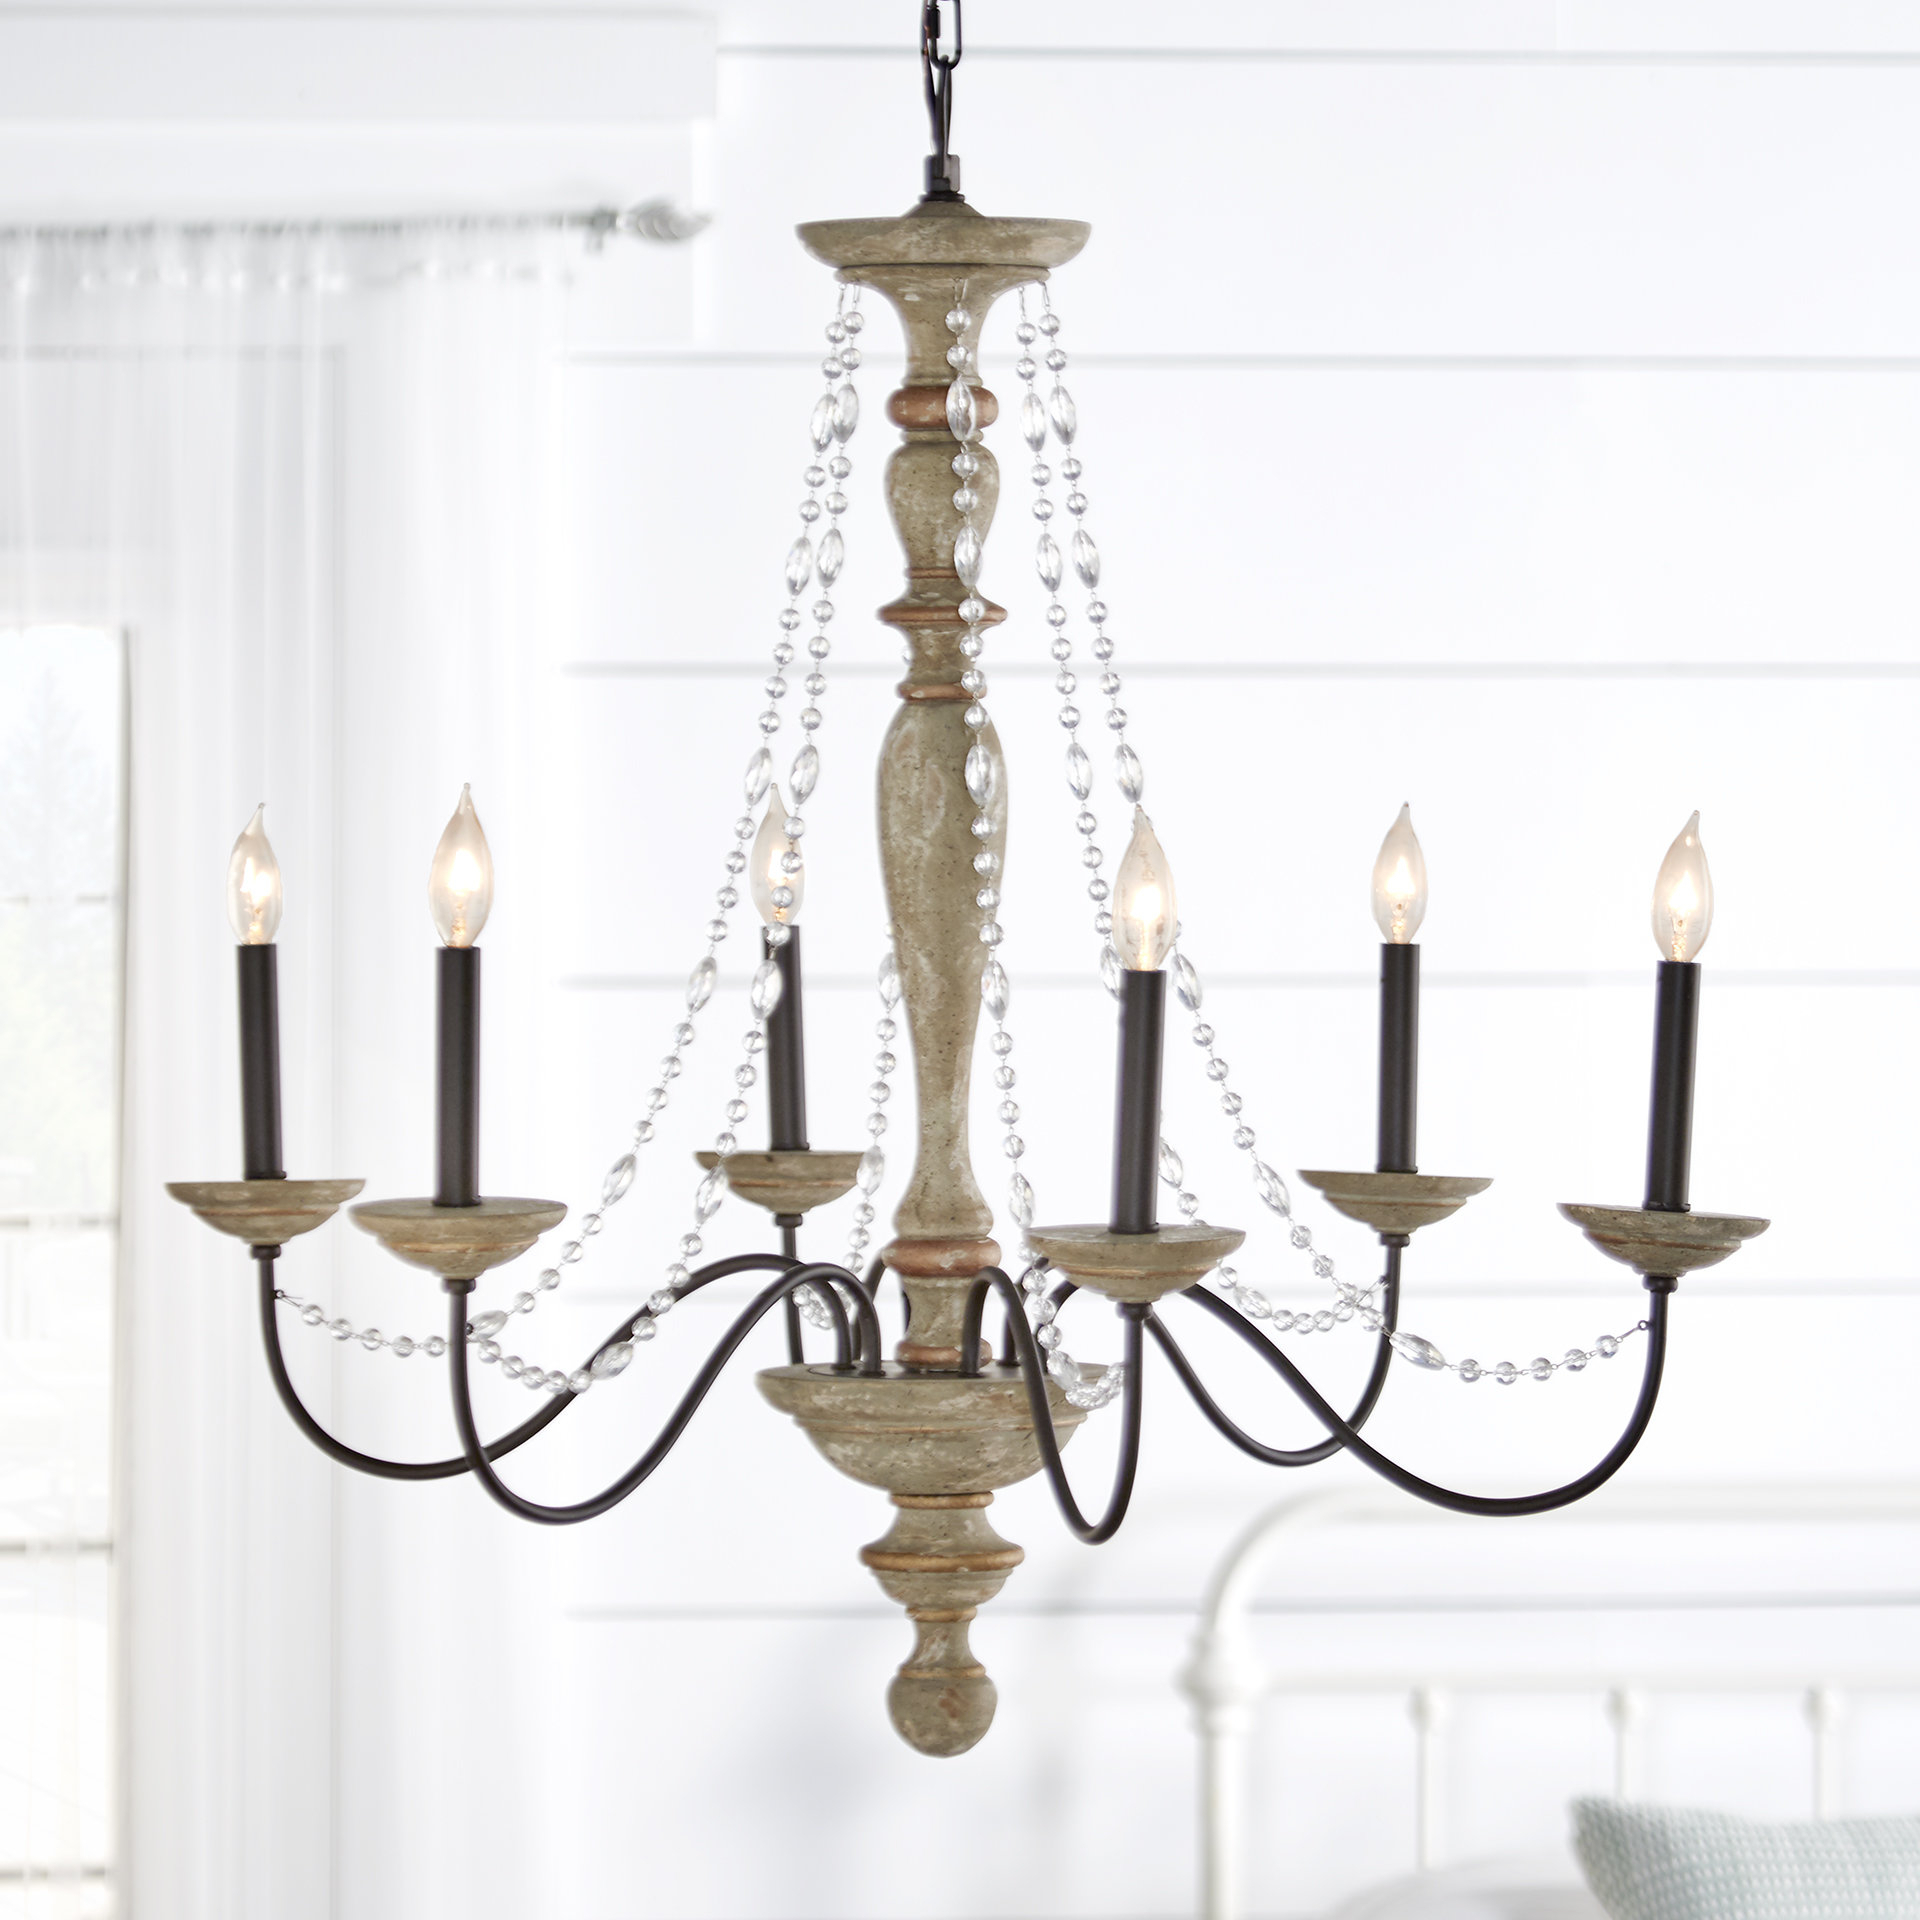 Preferred Three Posts Brennon 6 Light Candle Style Chandelier Regarding Shaylee 6 Light Candle Style Chandeliers (View 16 of 25)